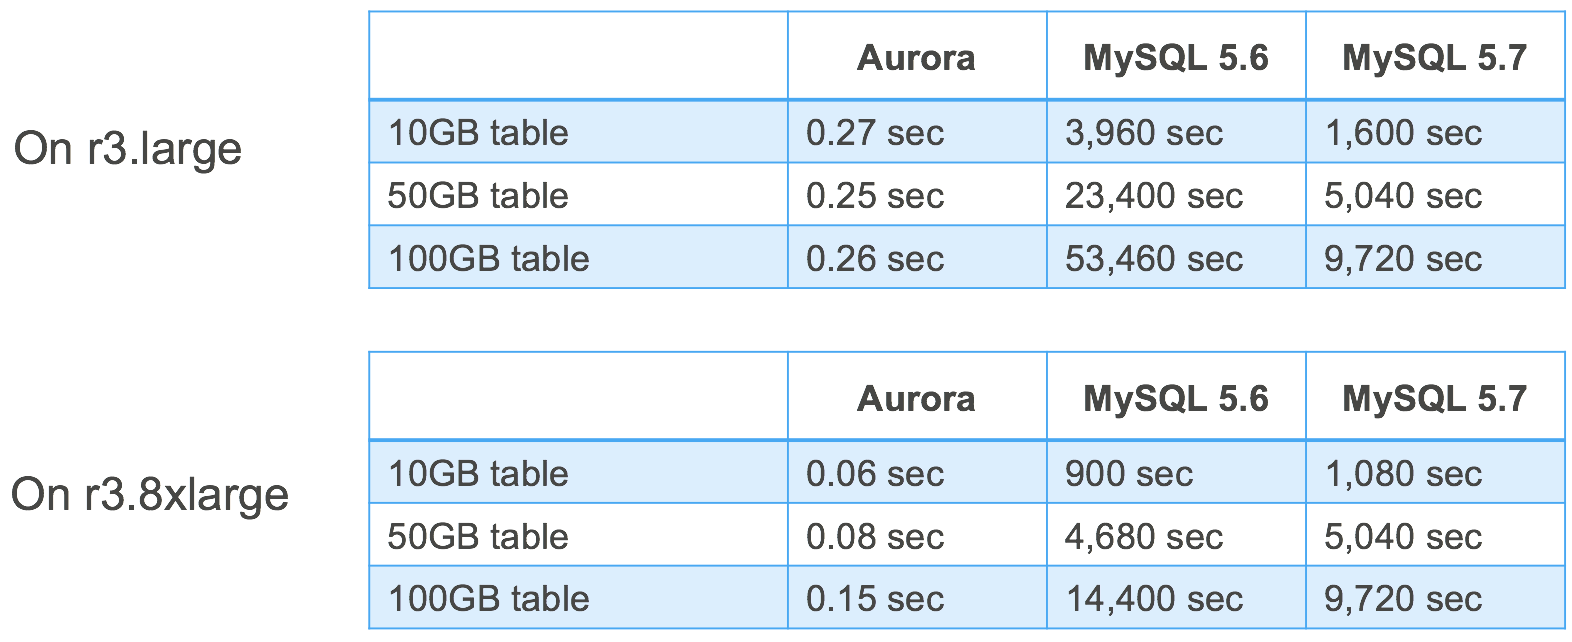 TableComparison